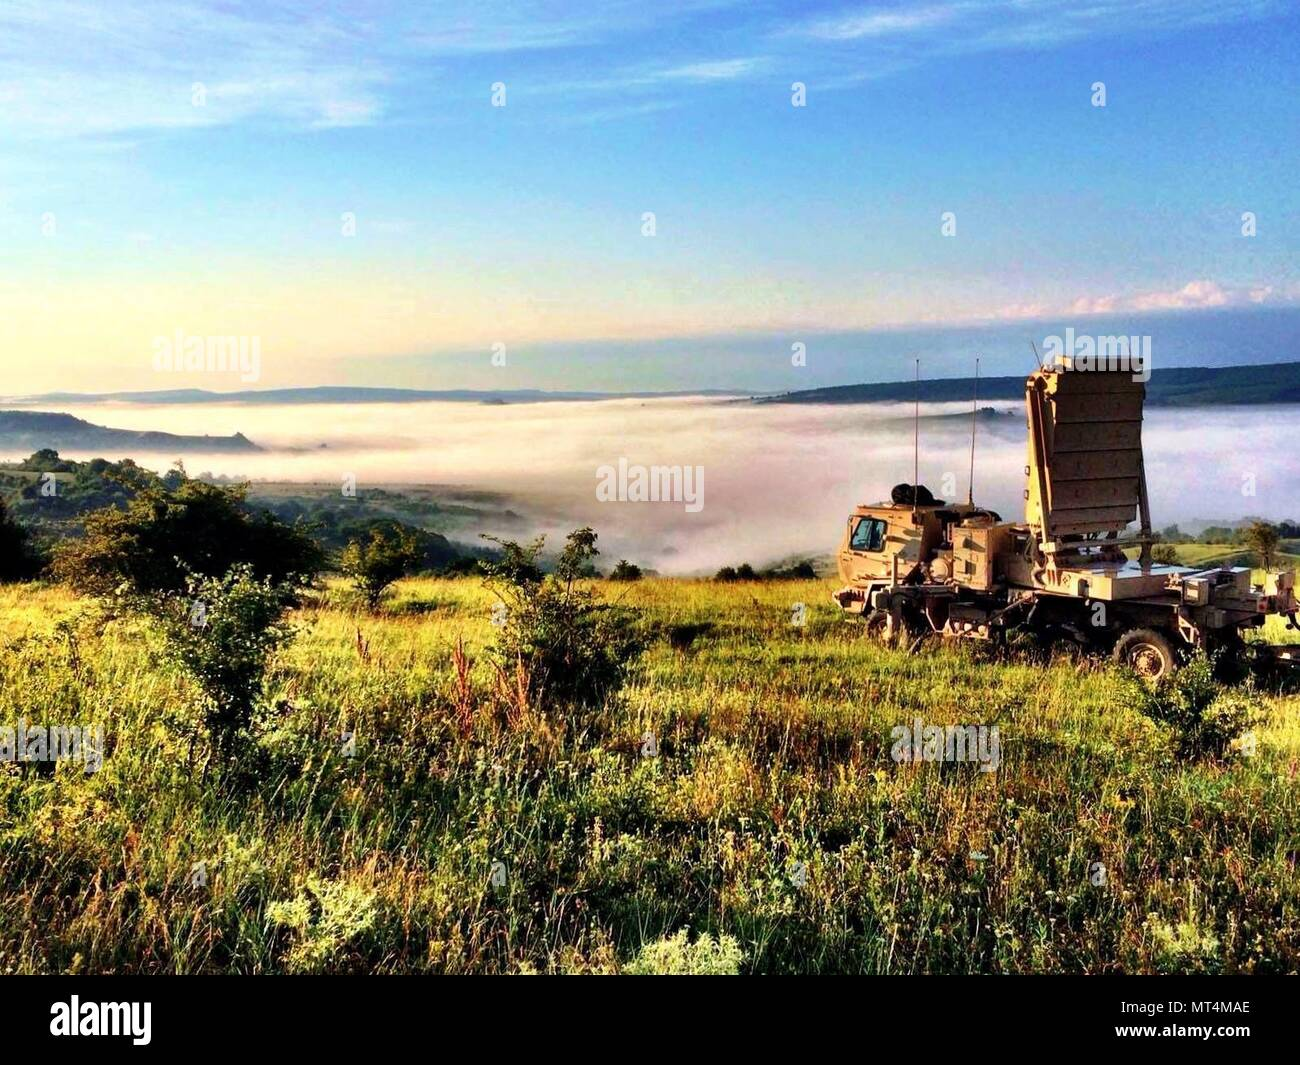 The radar section of 3rd Battalion, 29th Field Artillery Regiment, 3rd Armored Brigade Combat Team, 4th Infantry Division, sets up for a combined arms live-fire exercise in the morning mist of a valley at the Cincu Joint National Training Center, Romania, July 14, 2017. The radar detects and identifies enemy mortars, cannons and rockets, and it is an asset critical to helping the 'Iron Brigade' win a 'deep fight' prior to front-line encounters with an enemy. (U.S. Army photo by 3rd Armored Brigade Combat Team, 4th Infantry Division) - Stock Image